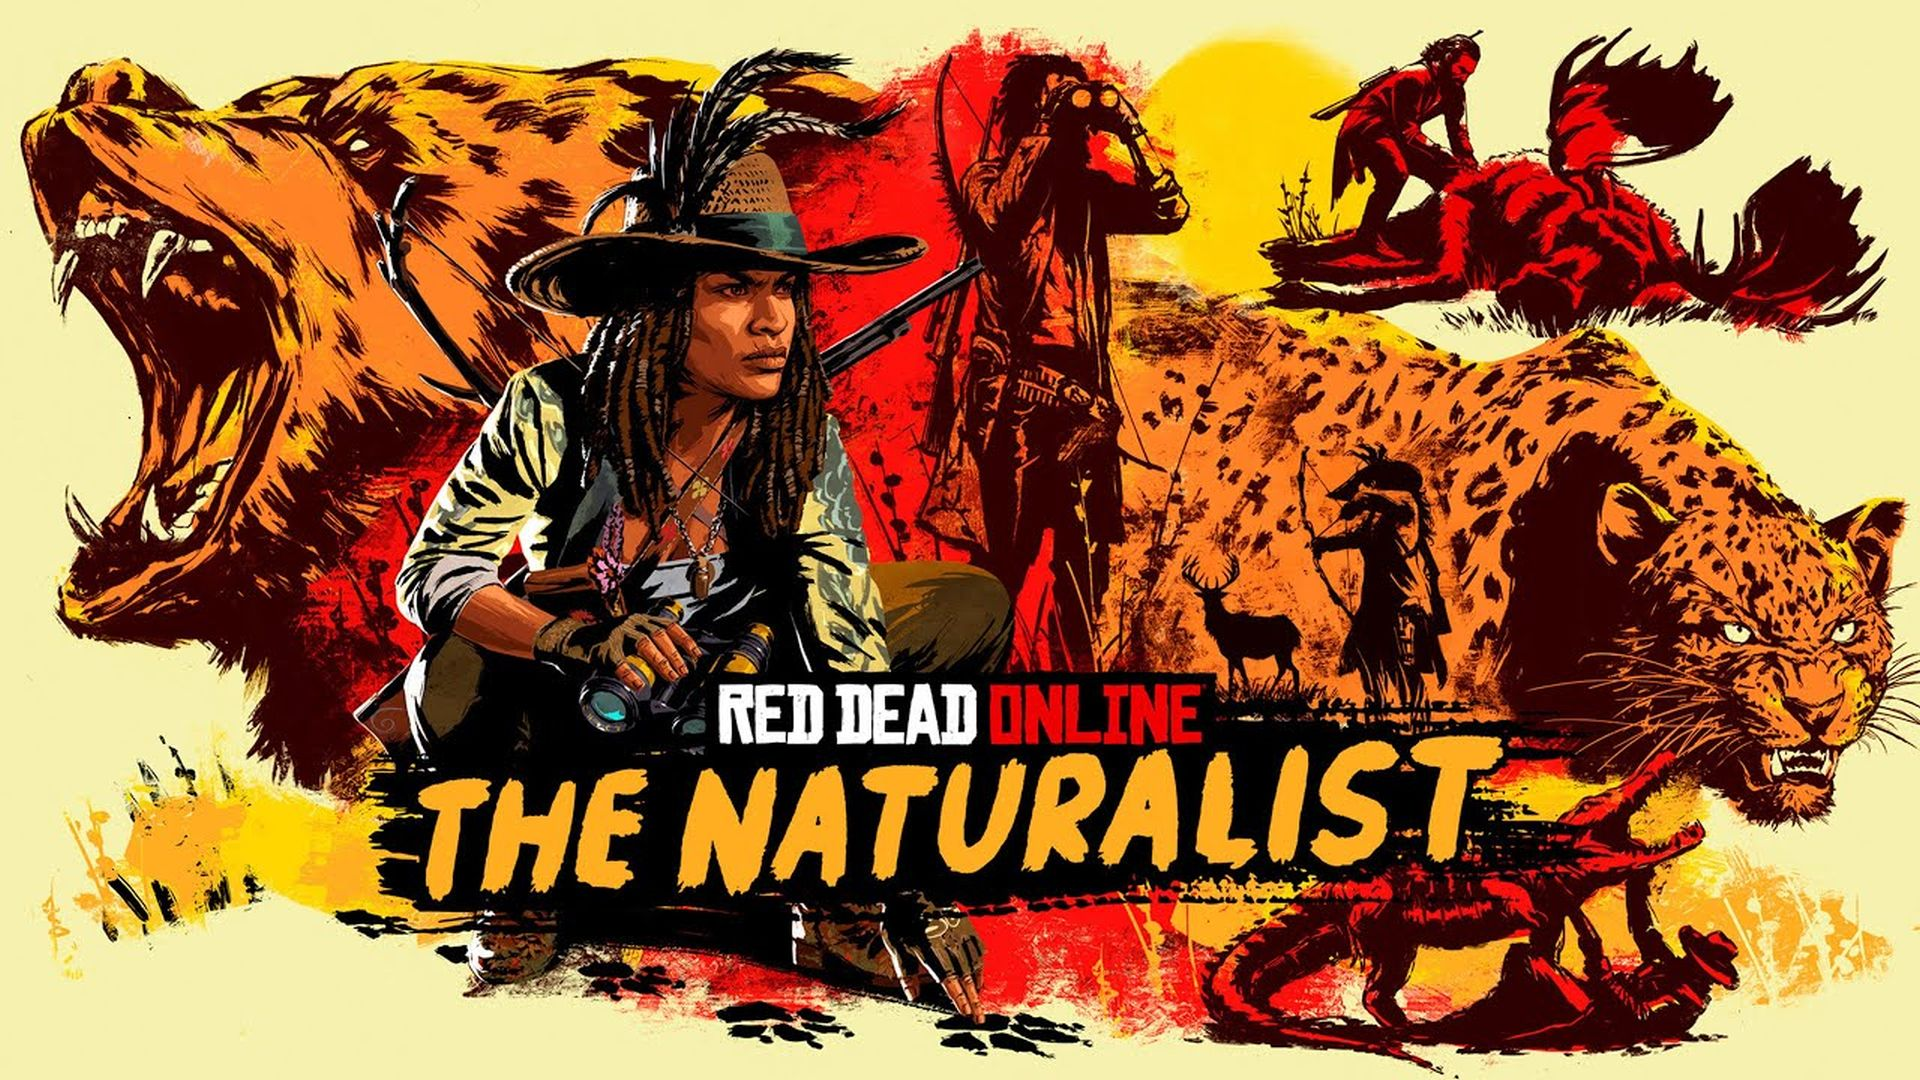 Red Dead Online - The Naturalist